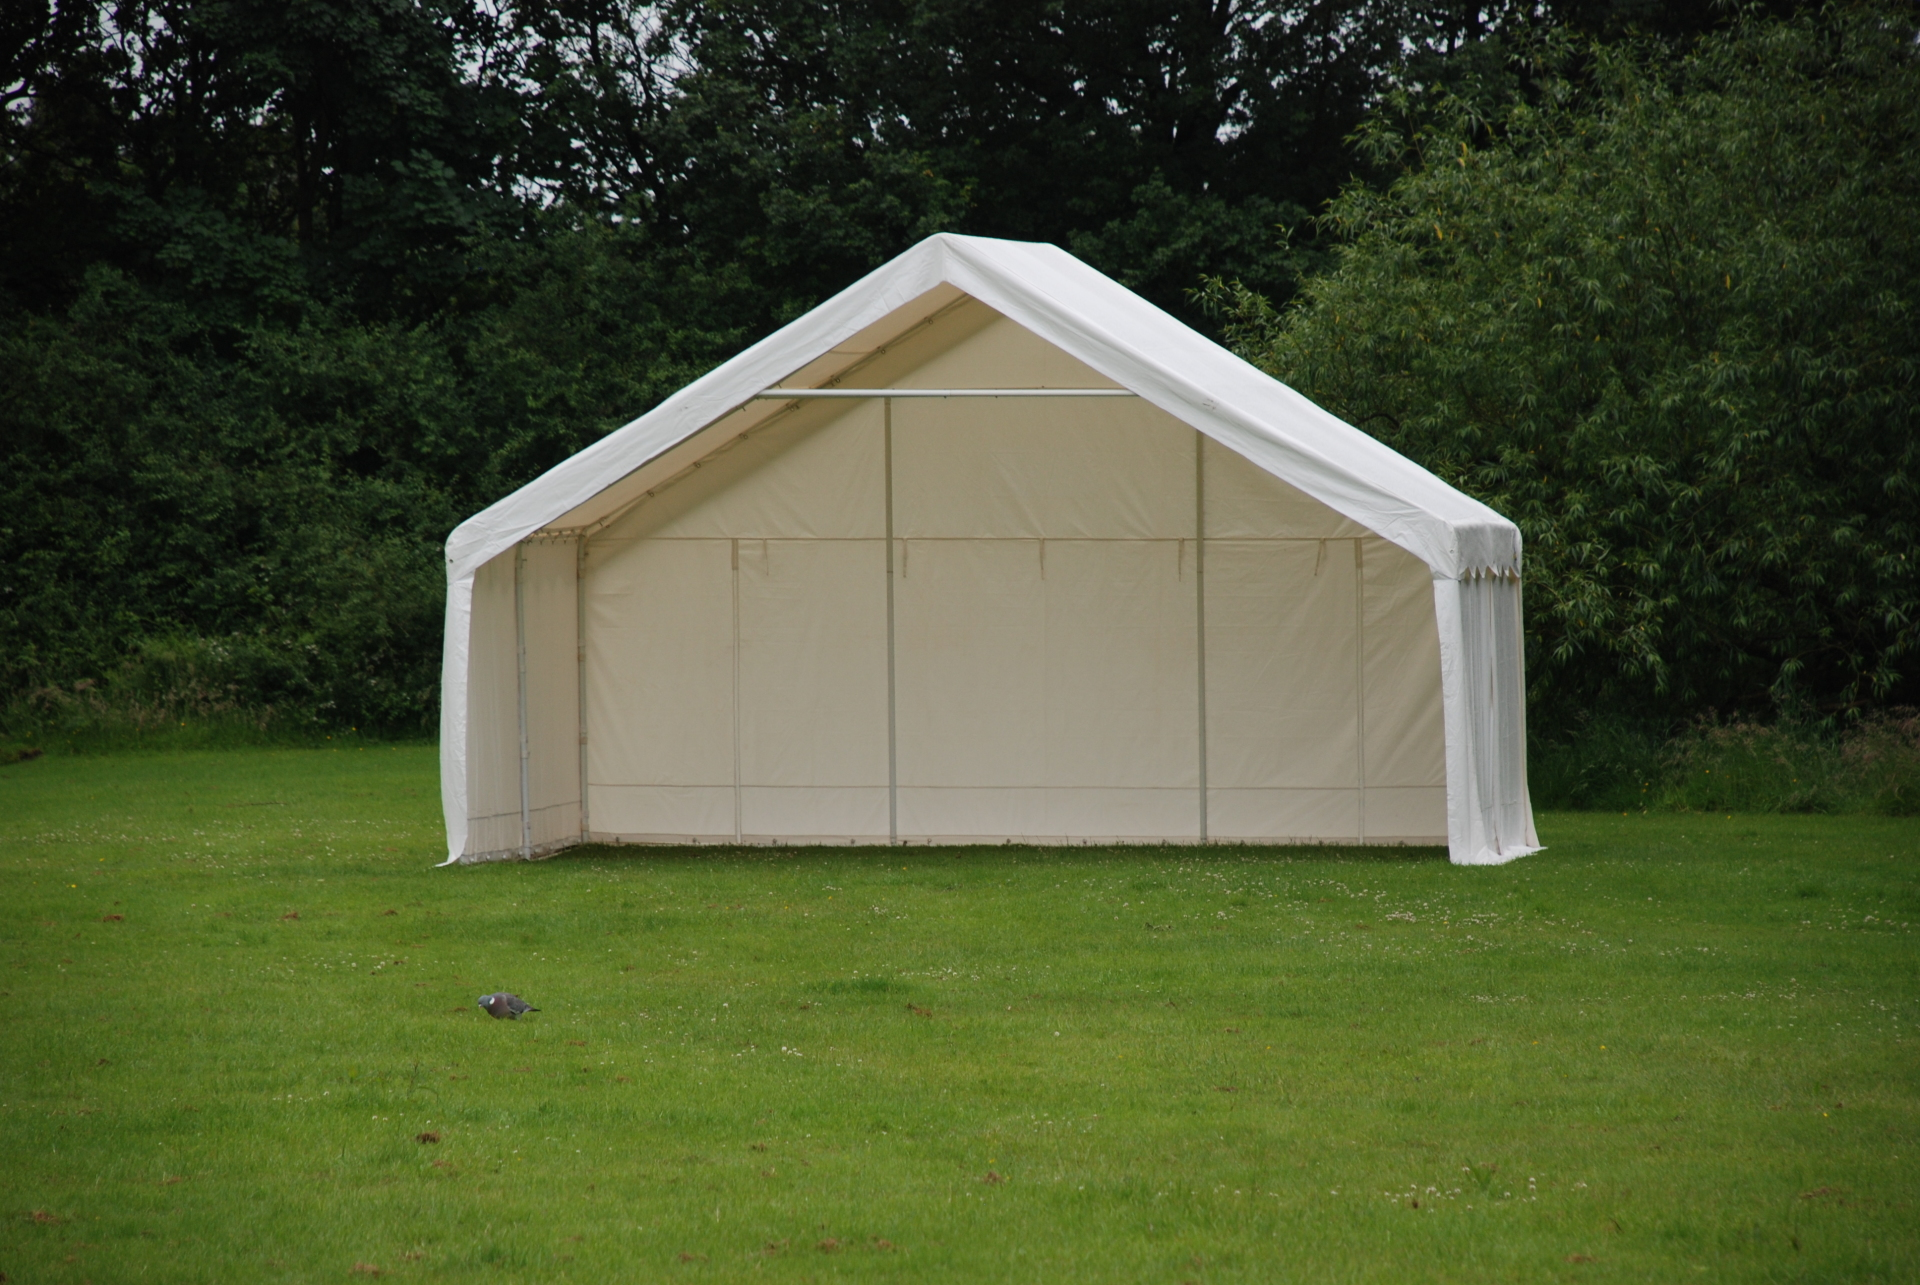 6m x 4m marquee for Gatley Festival